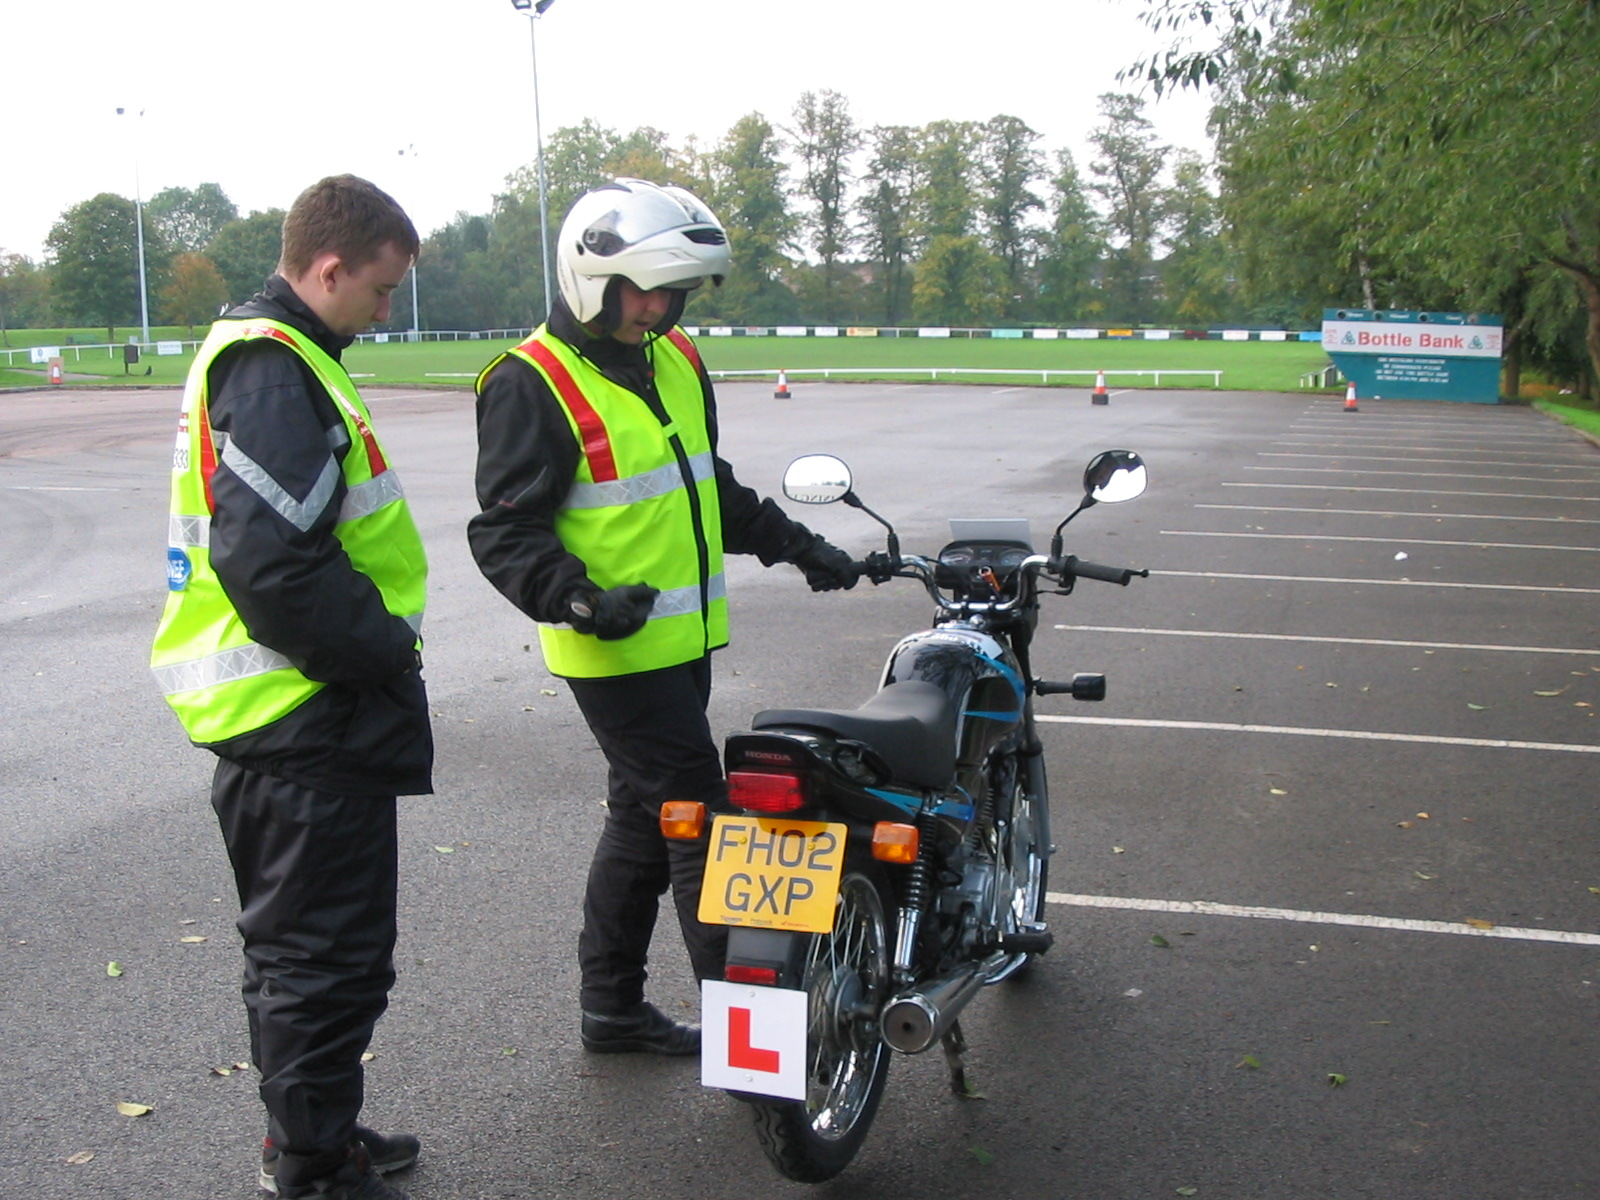 Motorcycle Instructor Course Cost